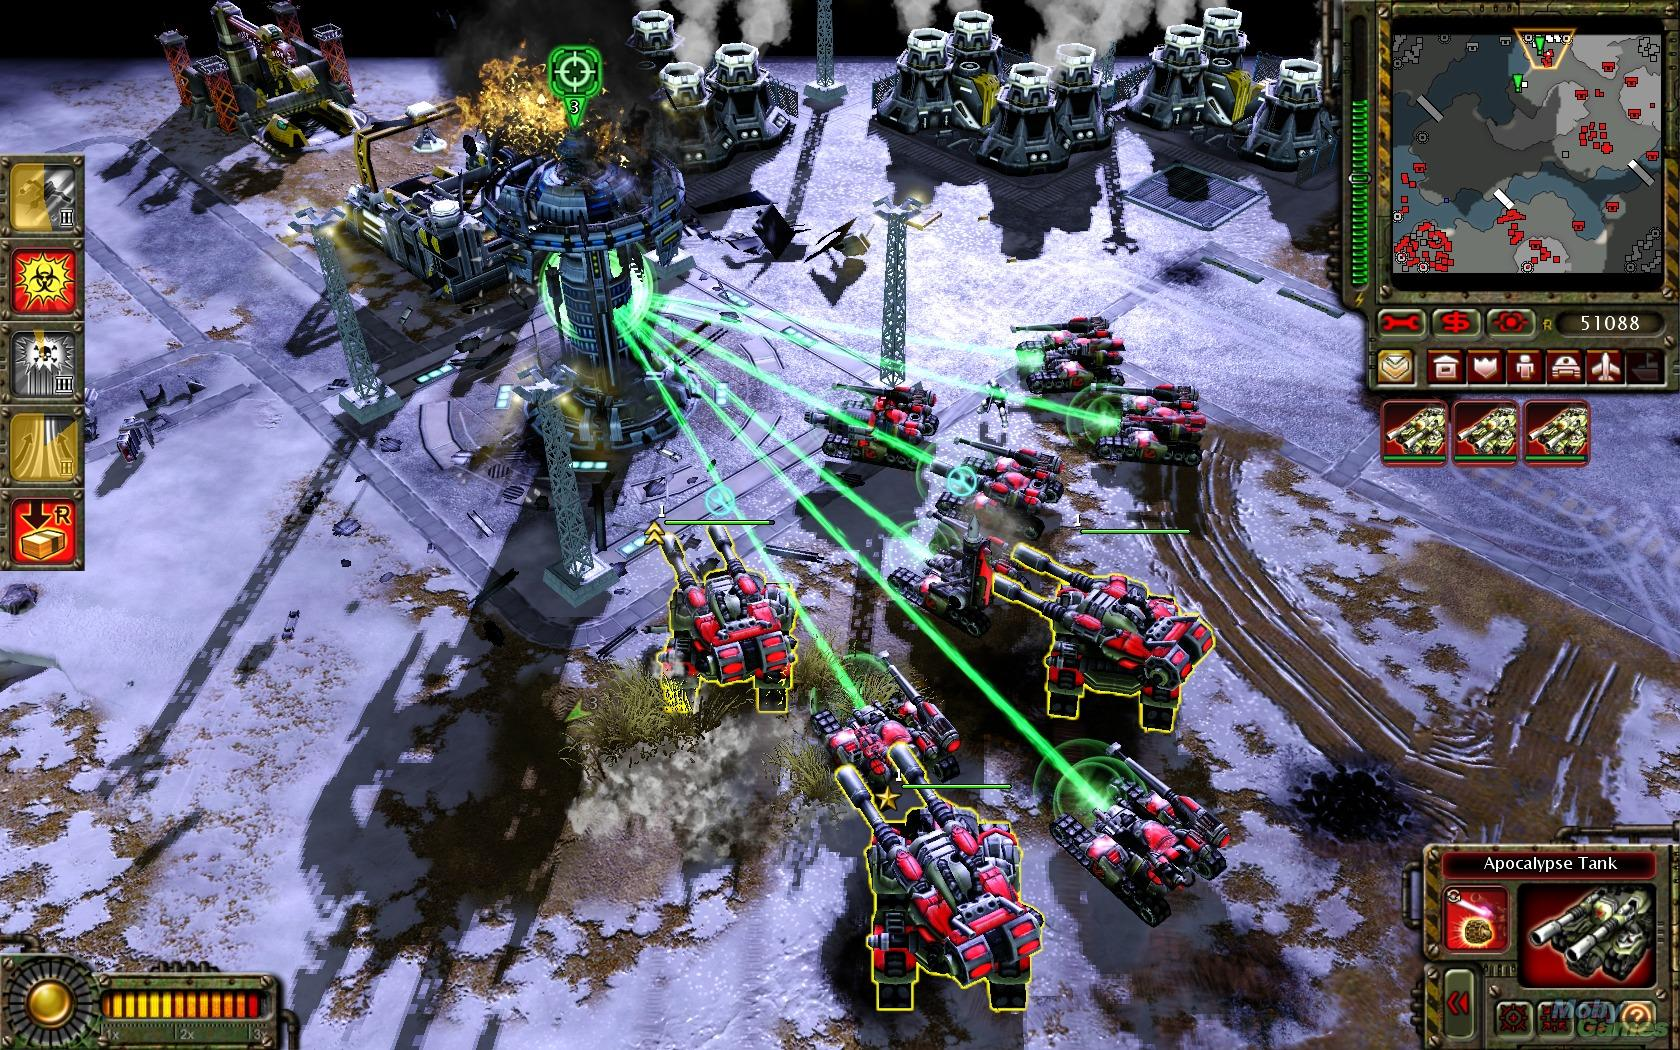 Command and conquer red alert 3 uprising intel macosx.